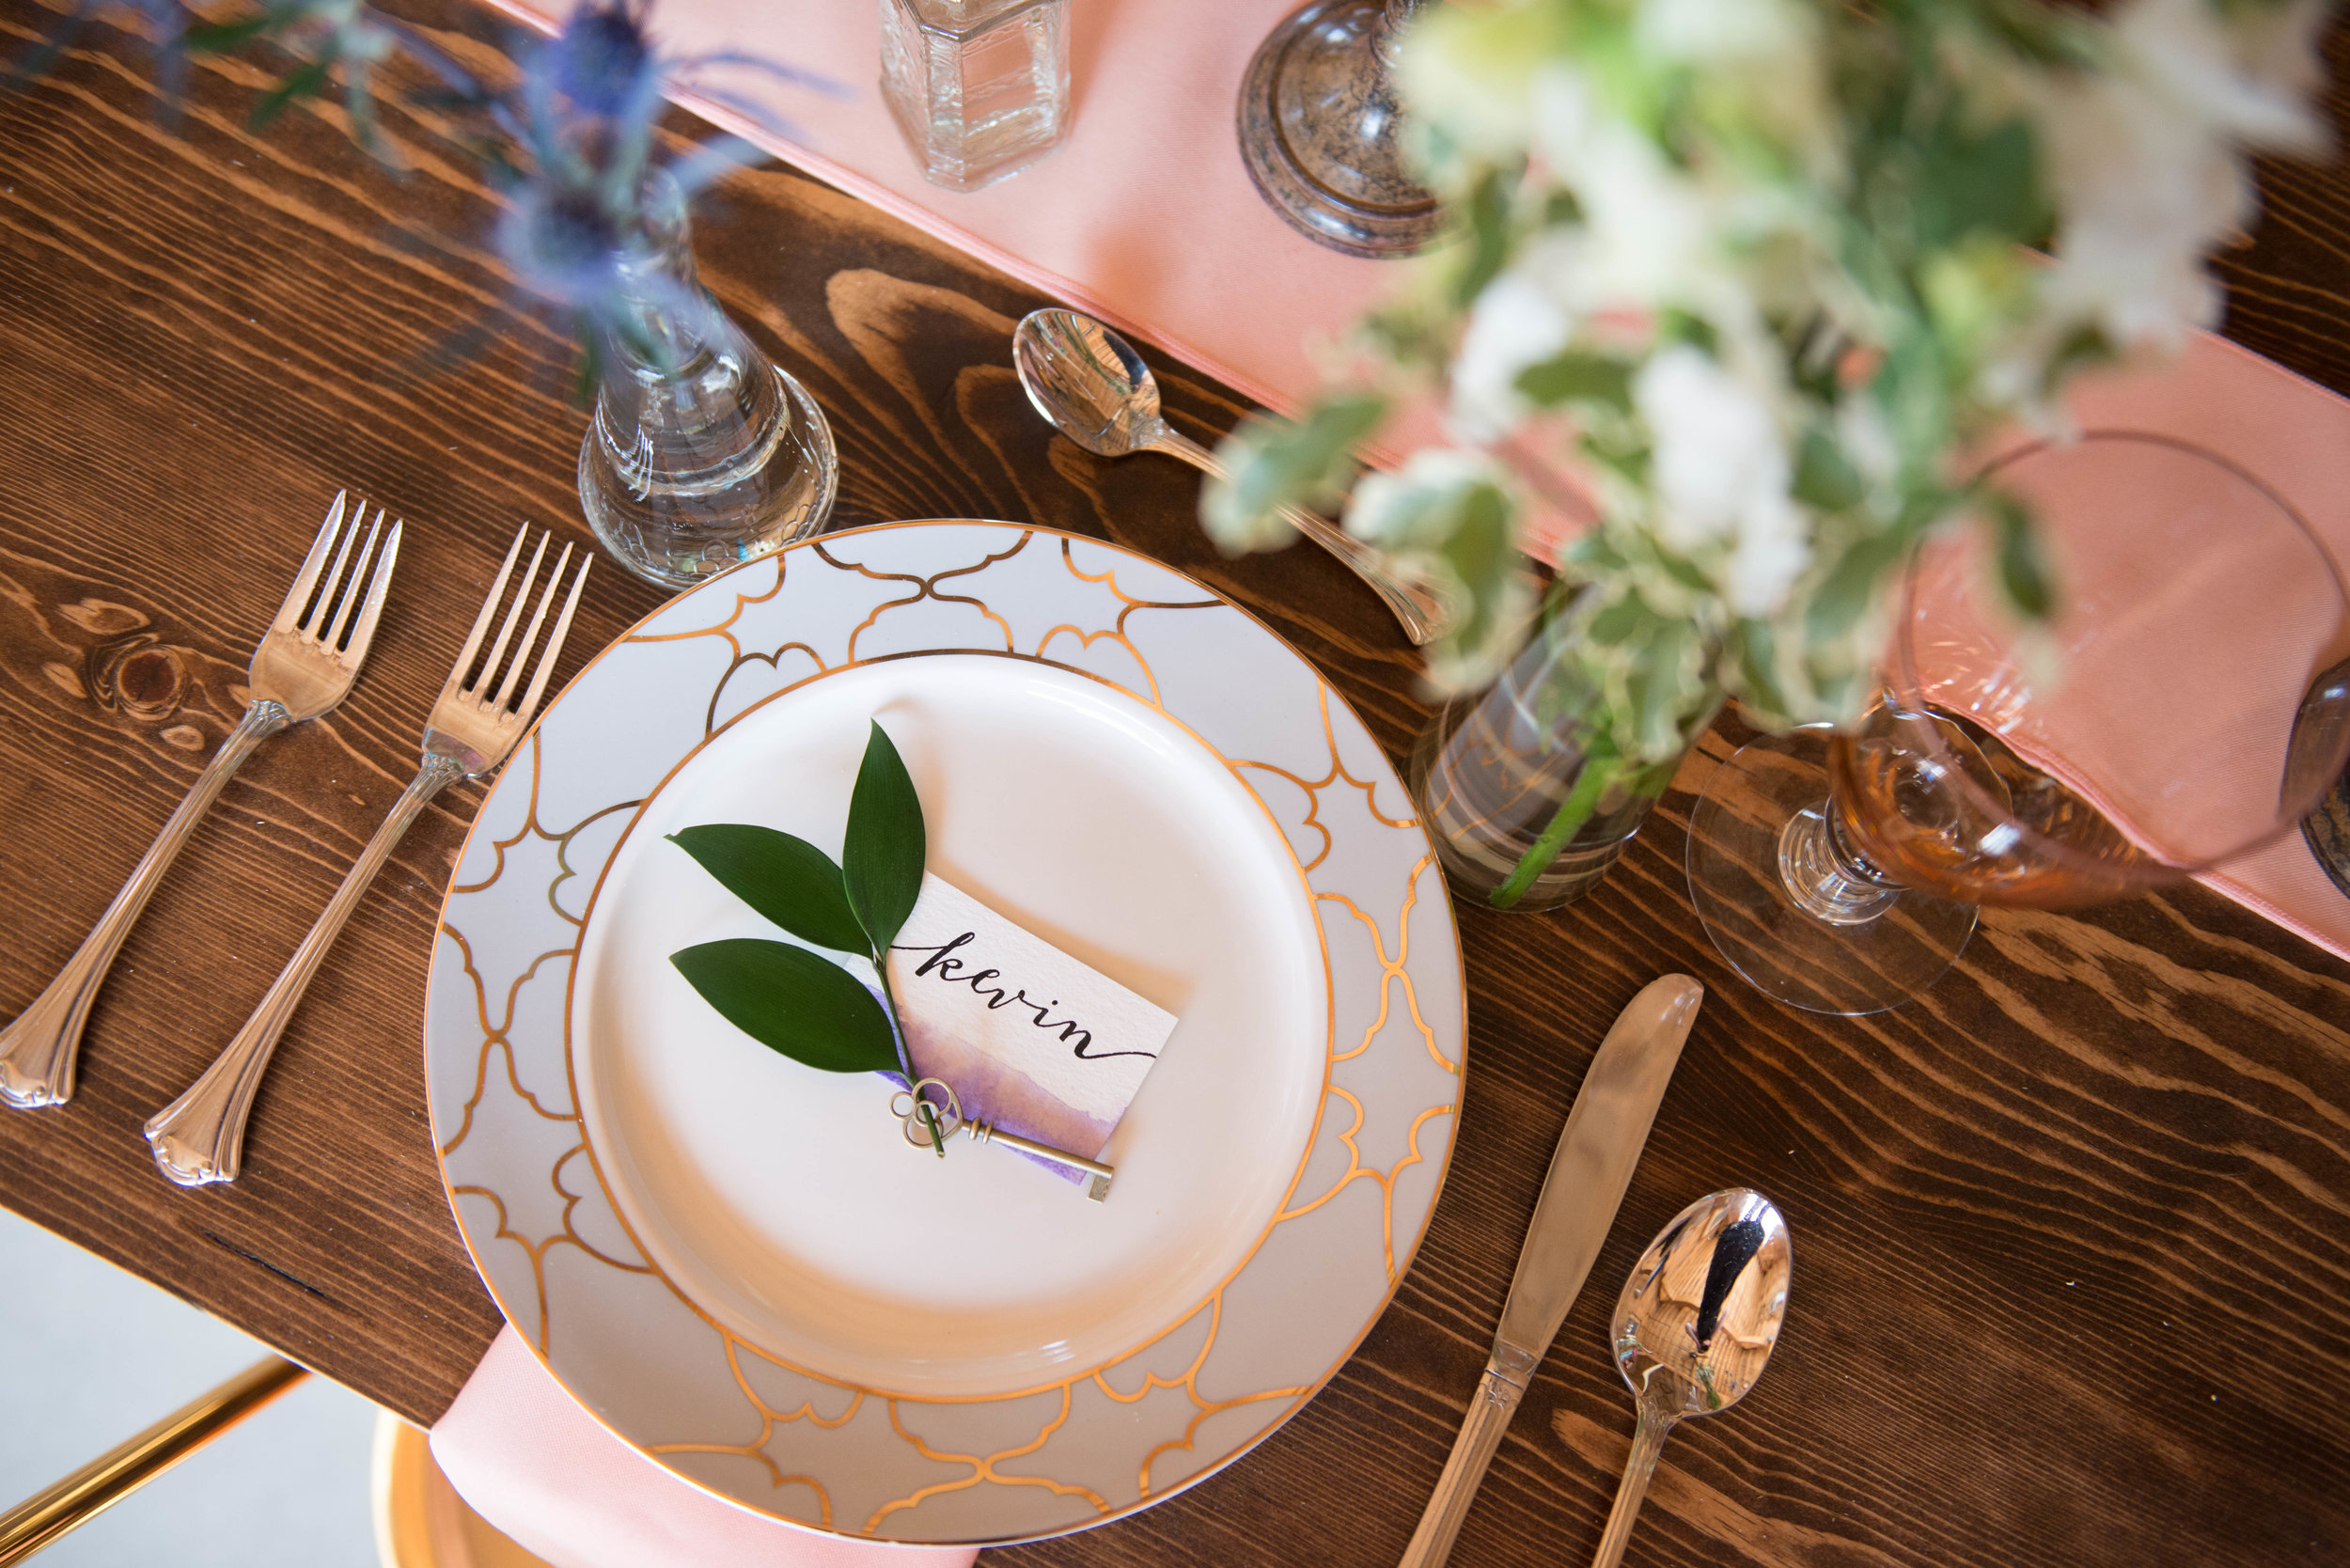 This beautiful place setting was designed by Pineapple Union and the calligraphy was done by Voyage Lettering - www.lisavillellaphotography.com